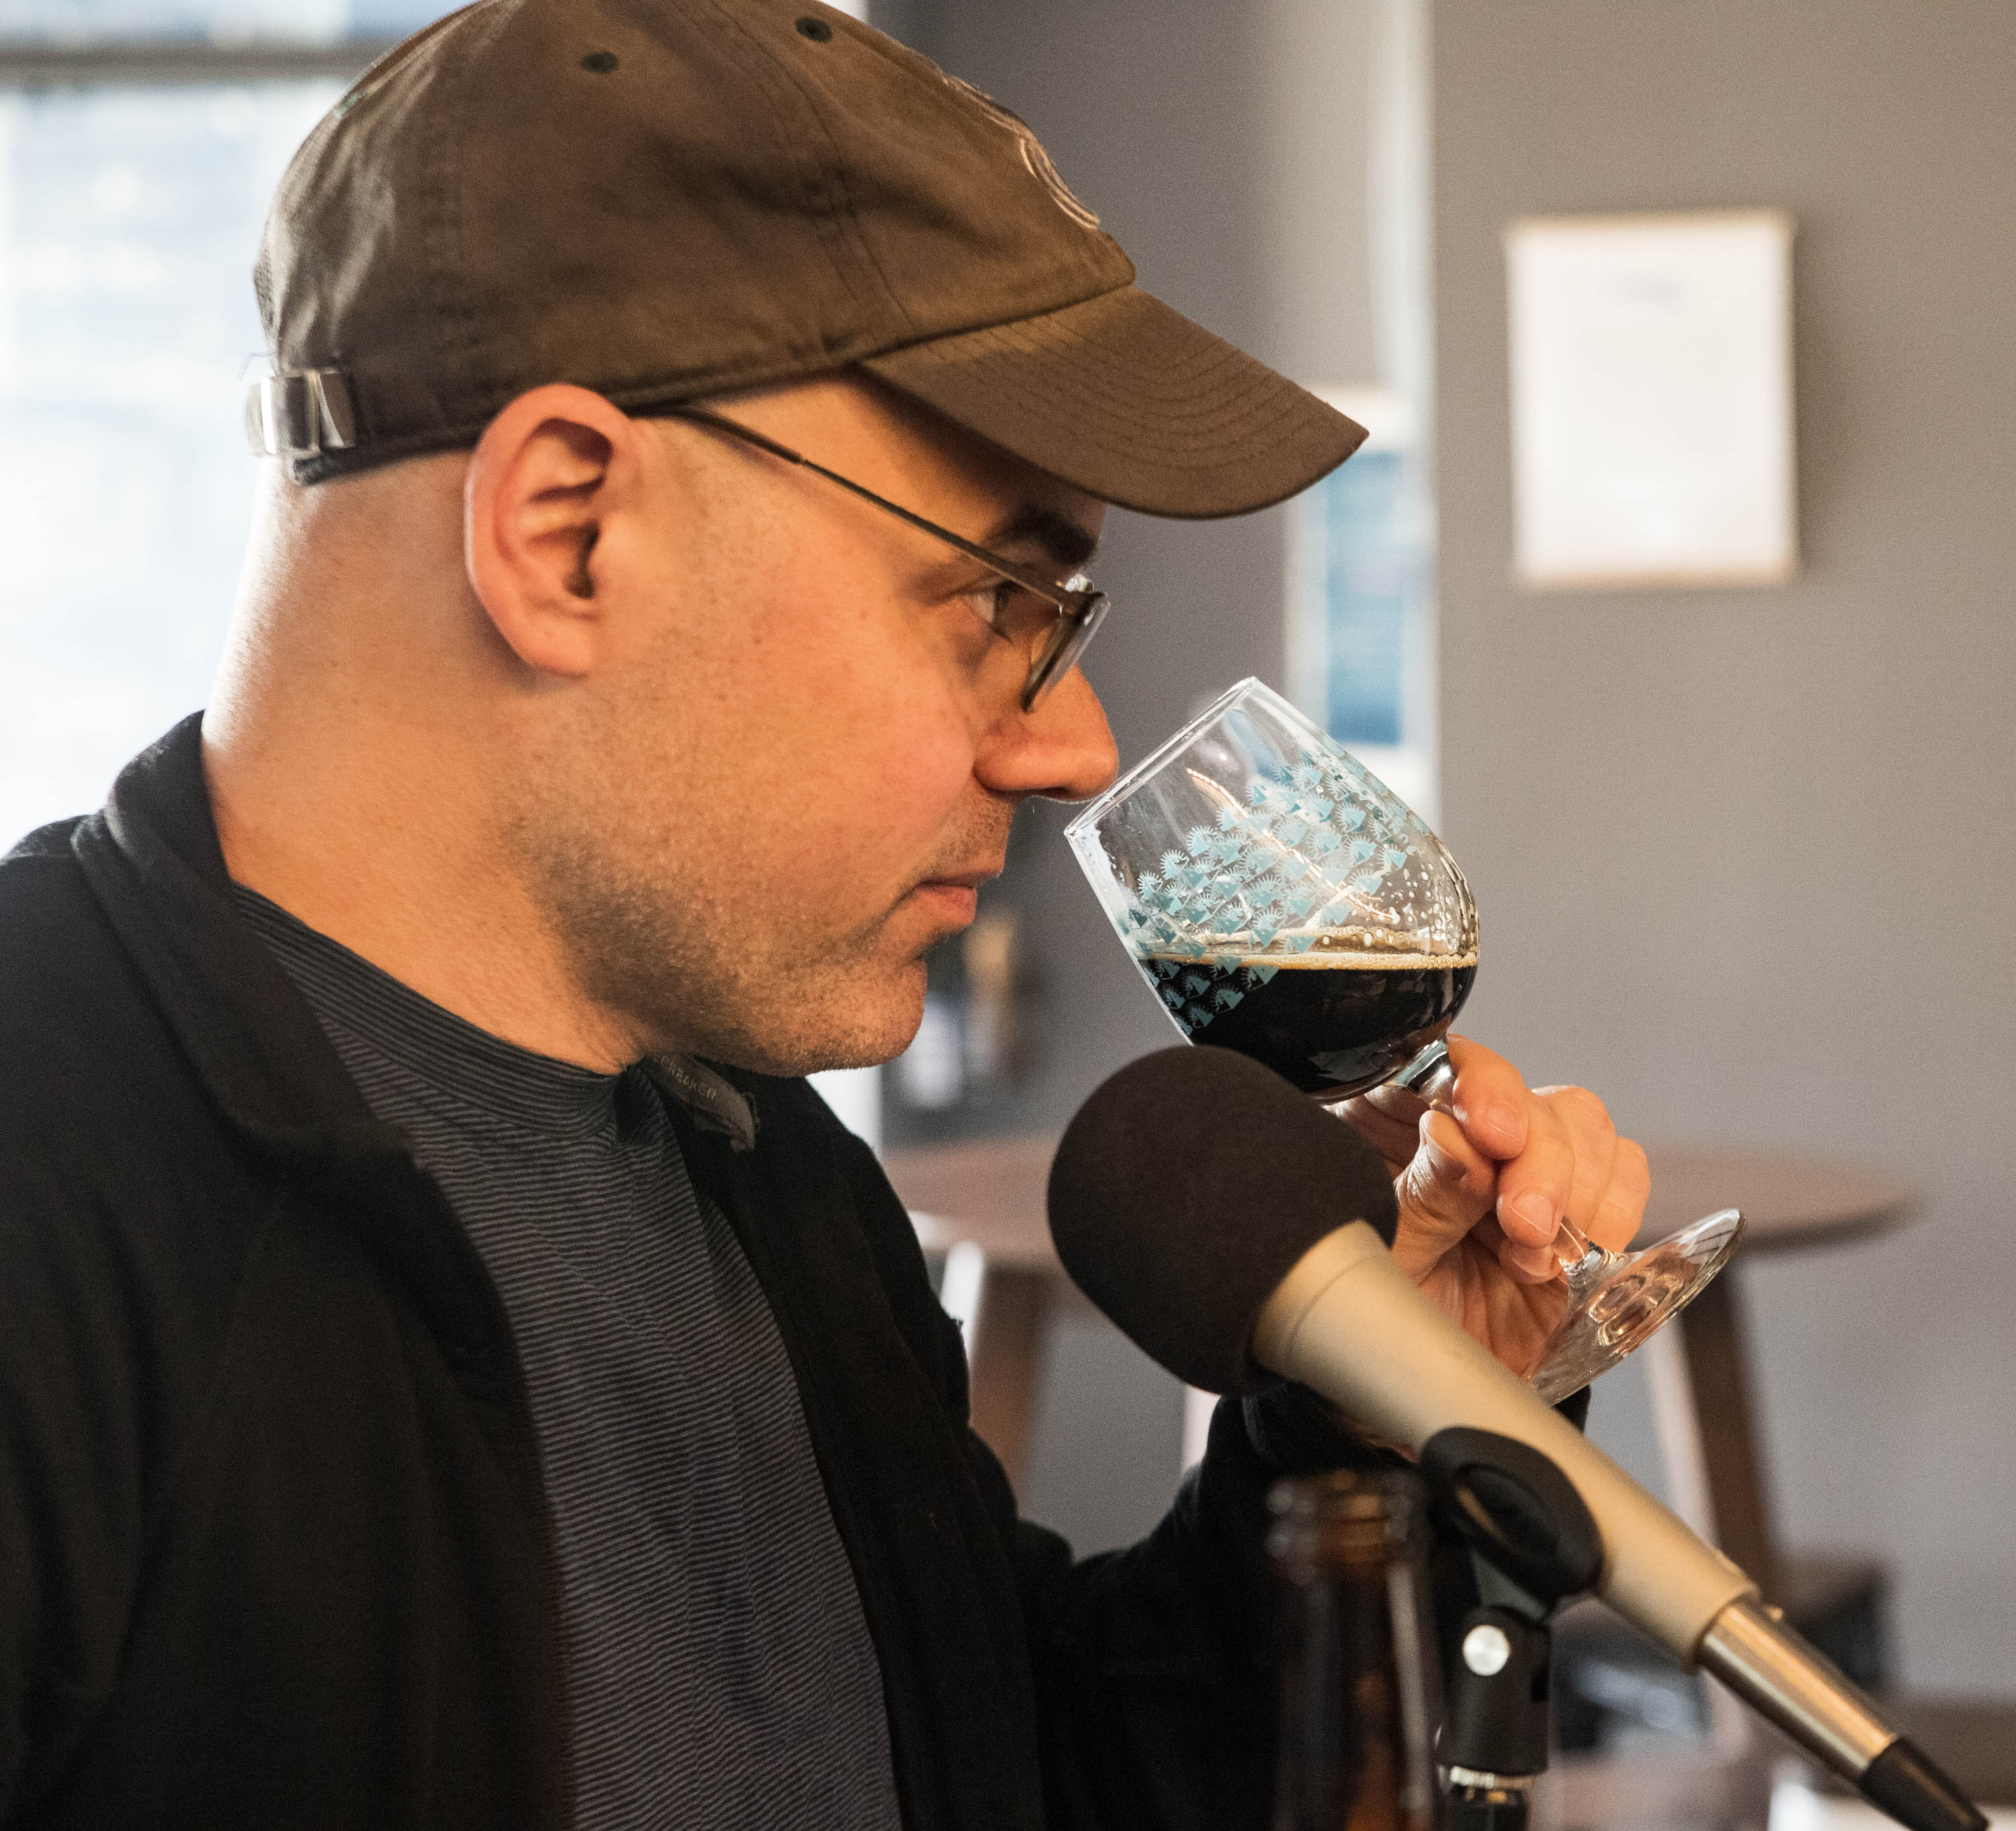 Josh Noel demonstrates his tasting technique while sampling&nbsp;Goose Island Bourbon County Brand Stout (2014 and 2017)&nbsp;at the Funk Factory Geuzeria in Madison, Wisconsin. <em>Mark Riechers&nbsp;(TTBOOK)</em>